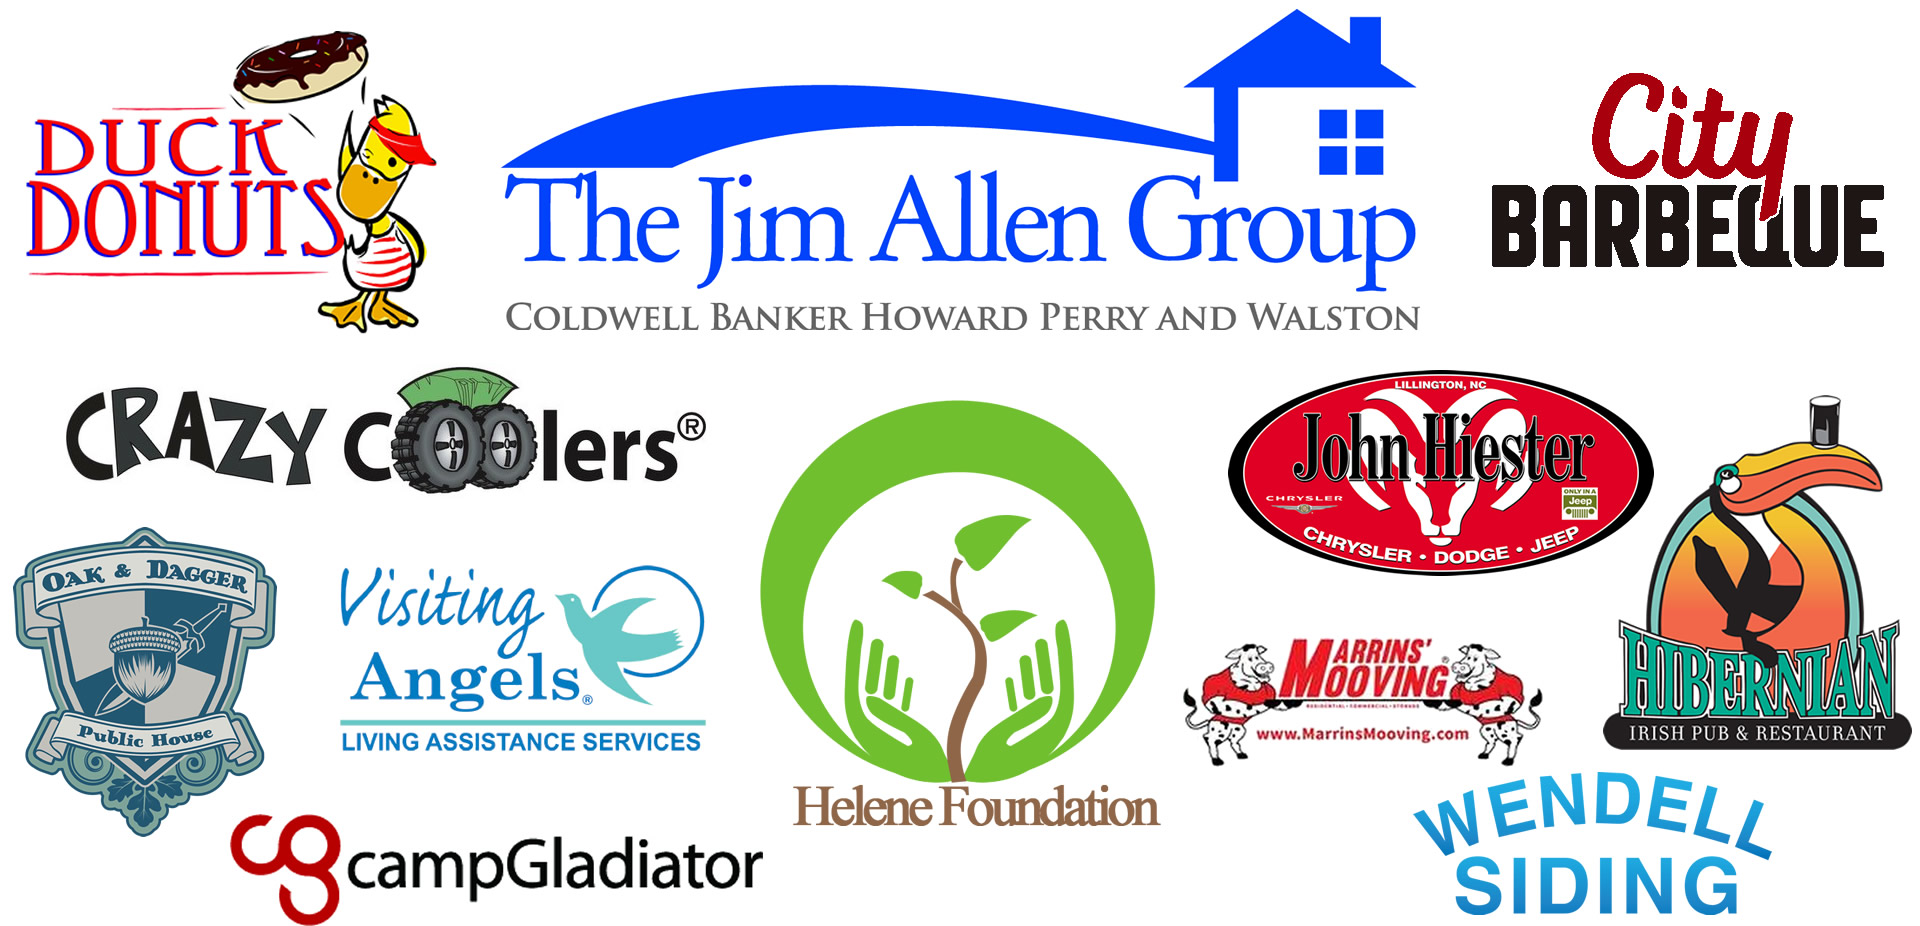 Thank You to all our Sponsors!